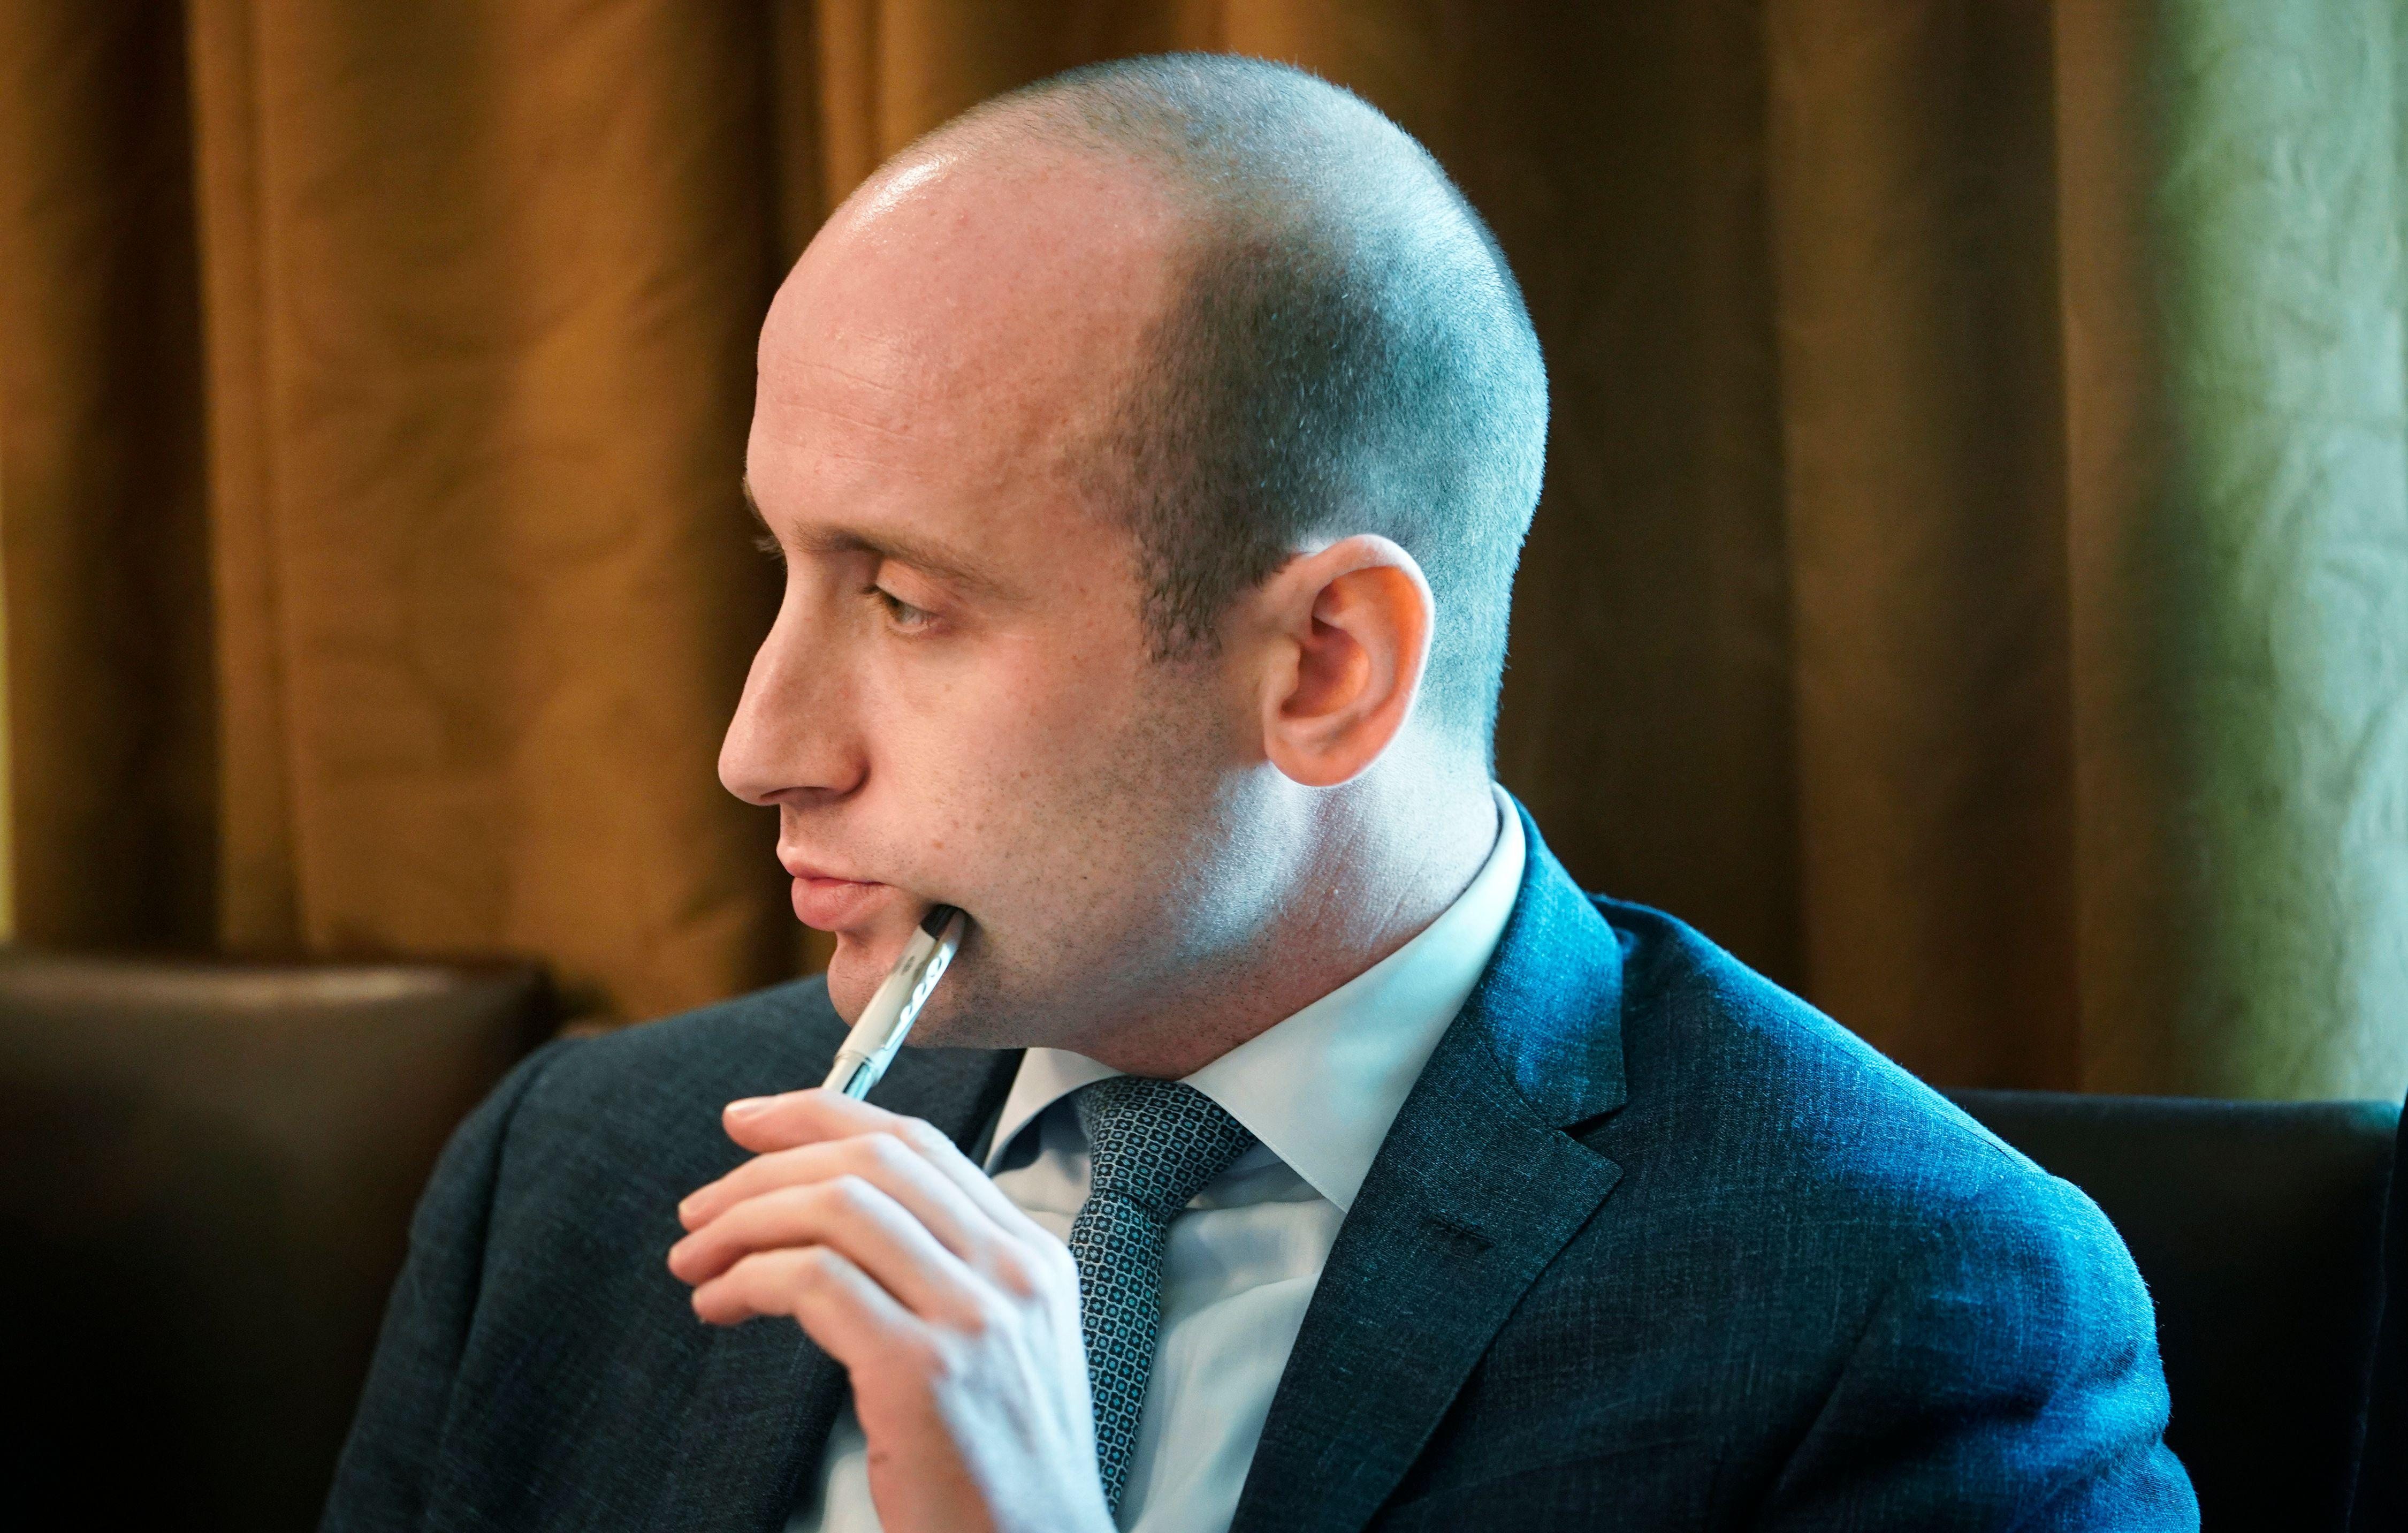 Senior advisor Stephen Miller attends a Cabinet meeting in the Cabinet Room of the White House.